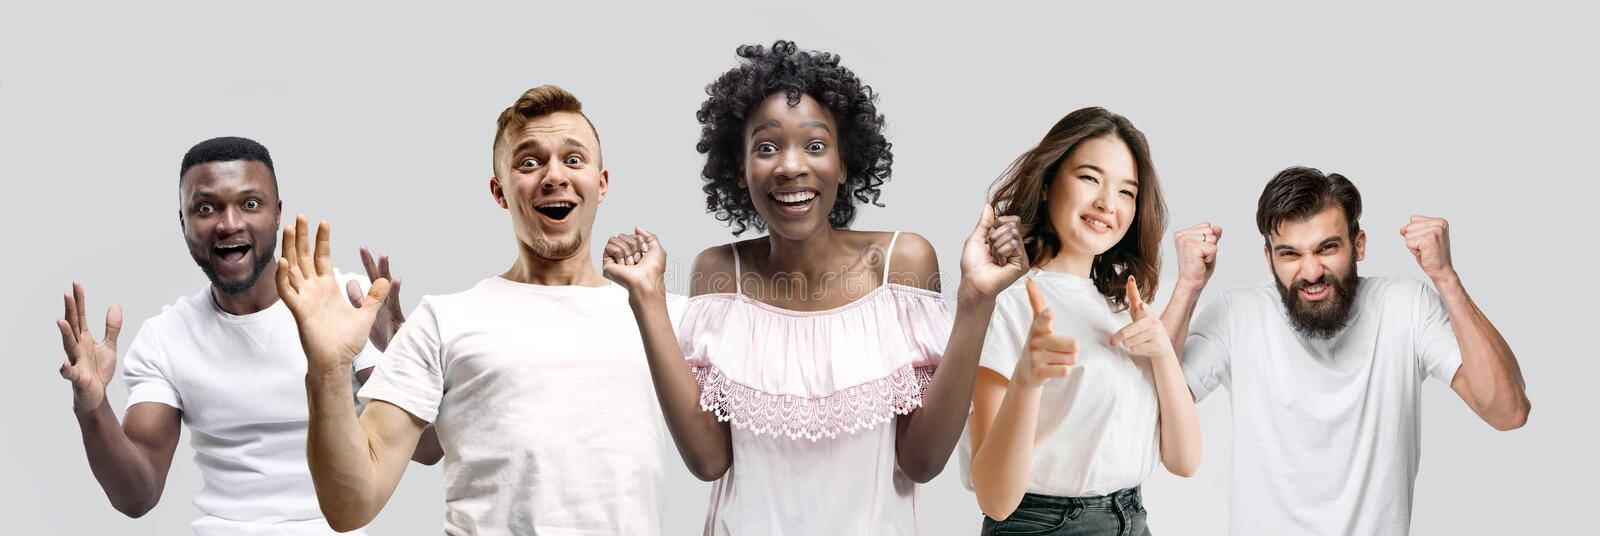 The collage of faces of surprised people on white backgrounds. stock image